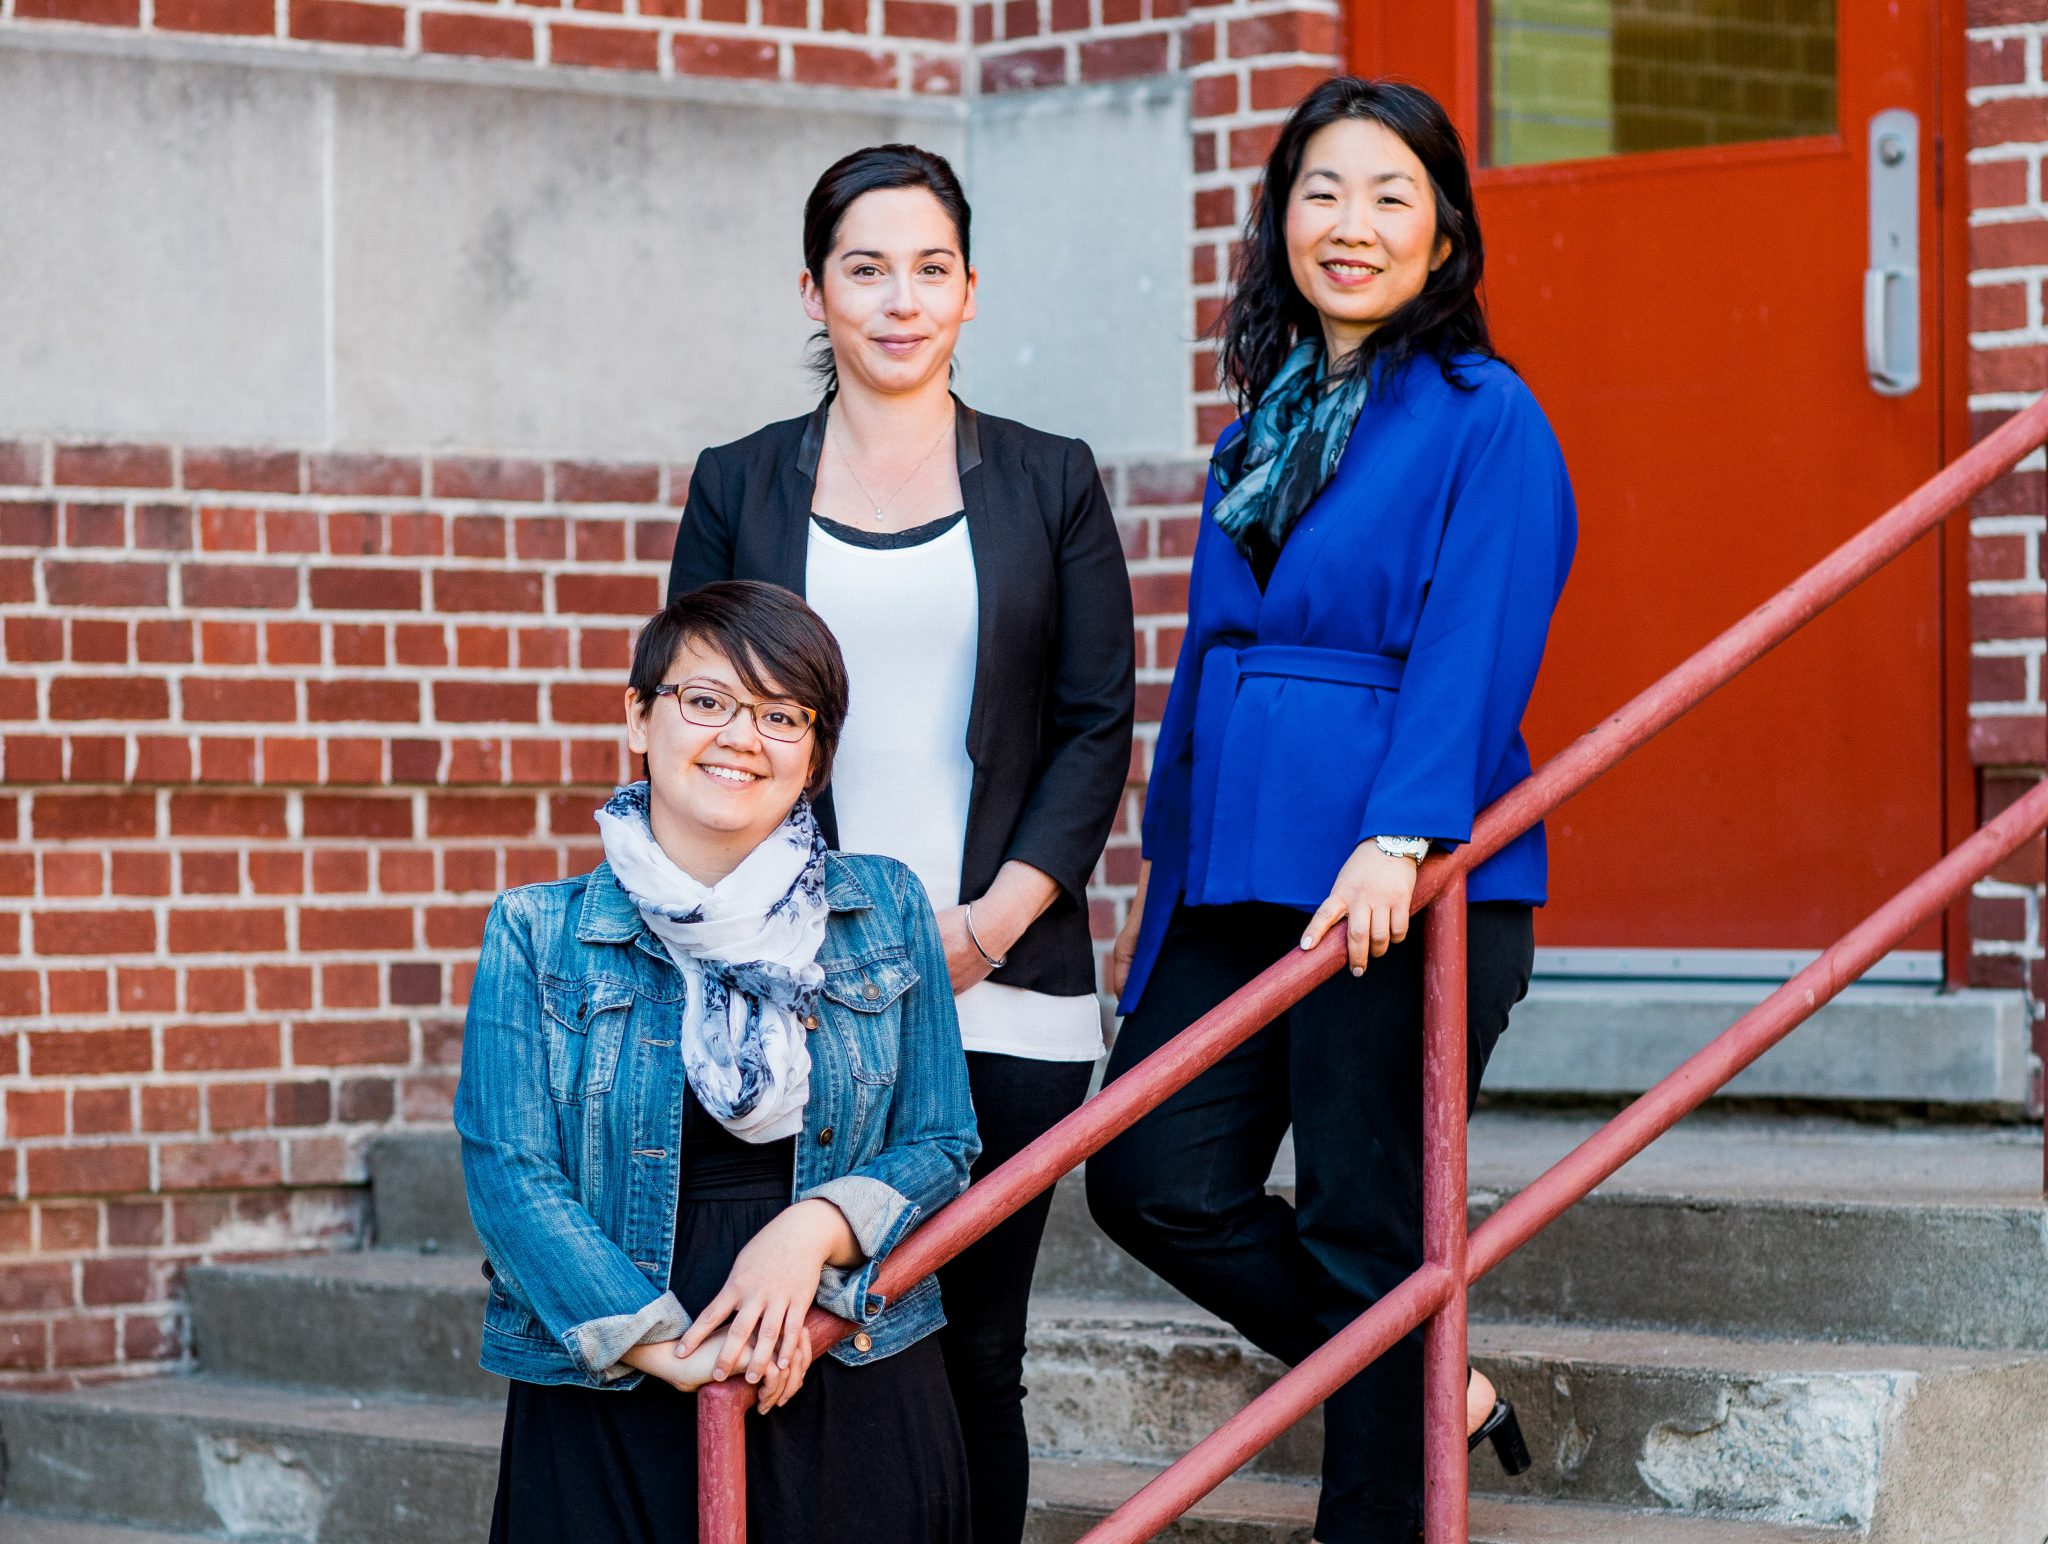 NorthBEAT Coordinating Team. Left to Right: Carole Lem, Dr. Shevaun Nadin, Dr. Chiachen Cheng